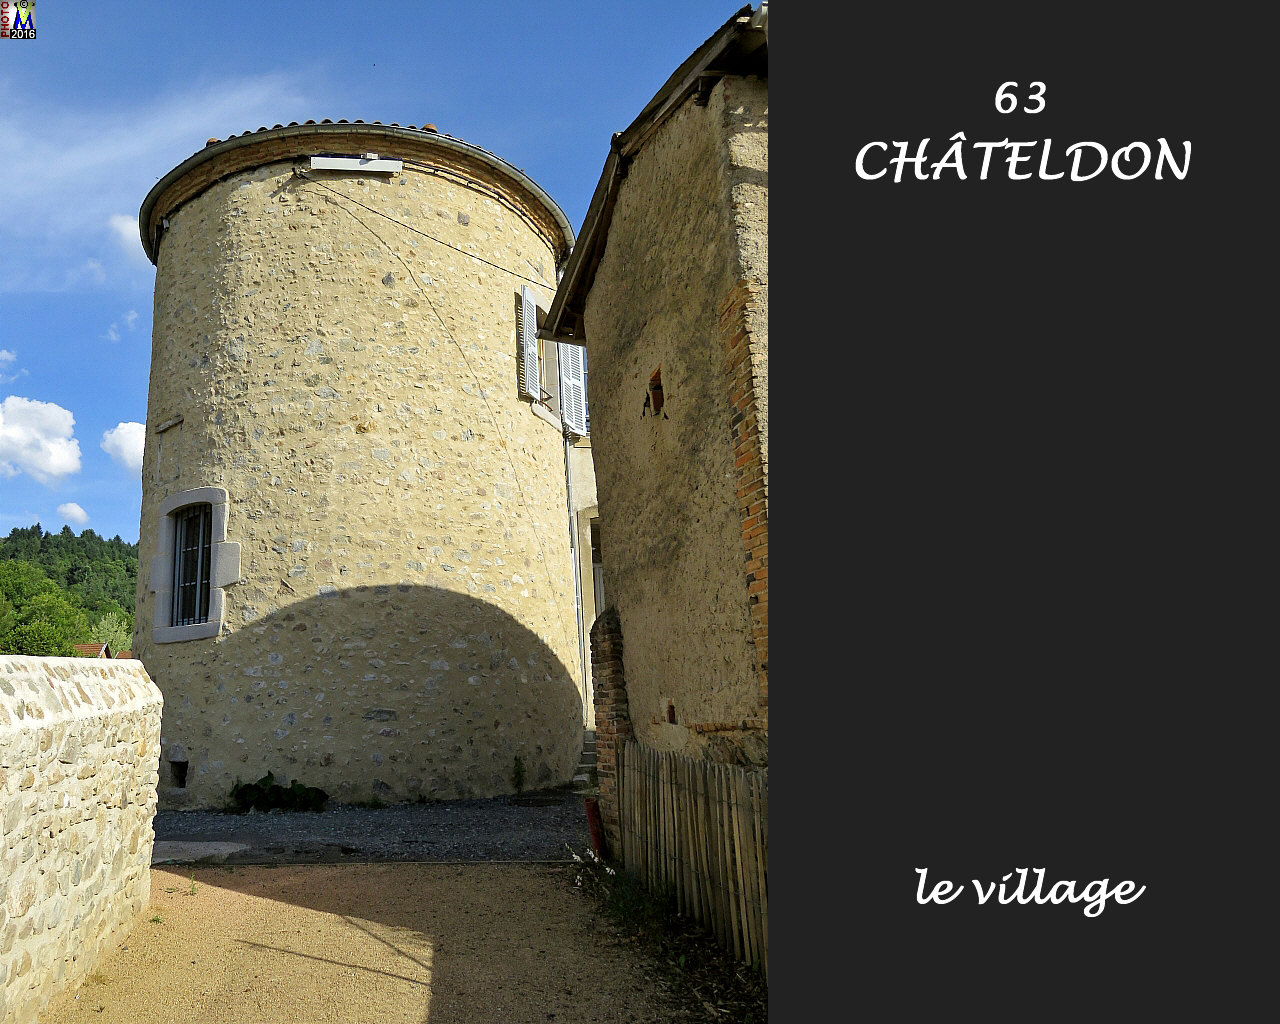 63CHATELDON_village_104.jpg